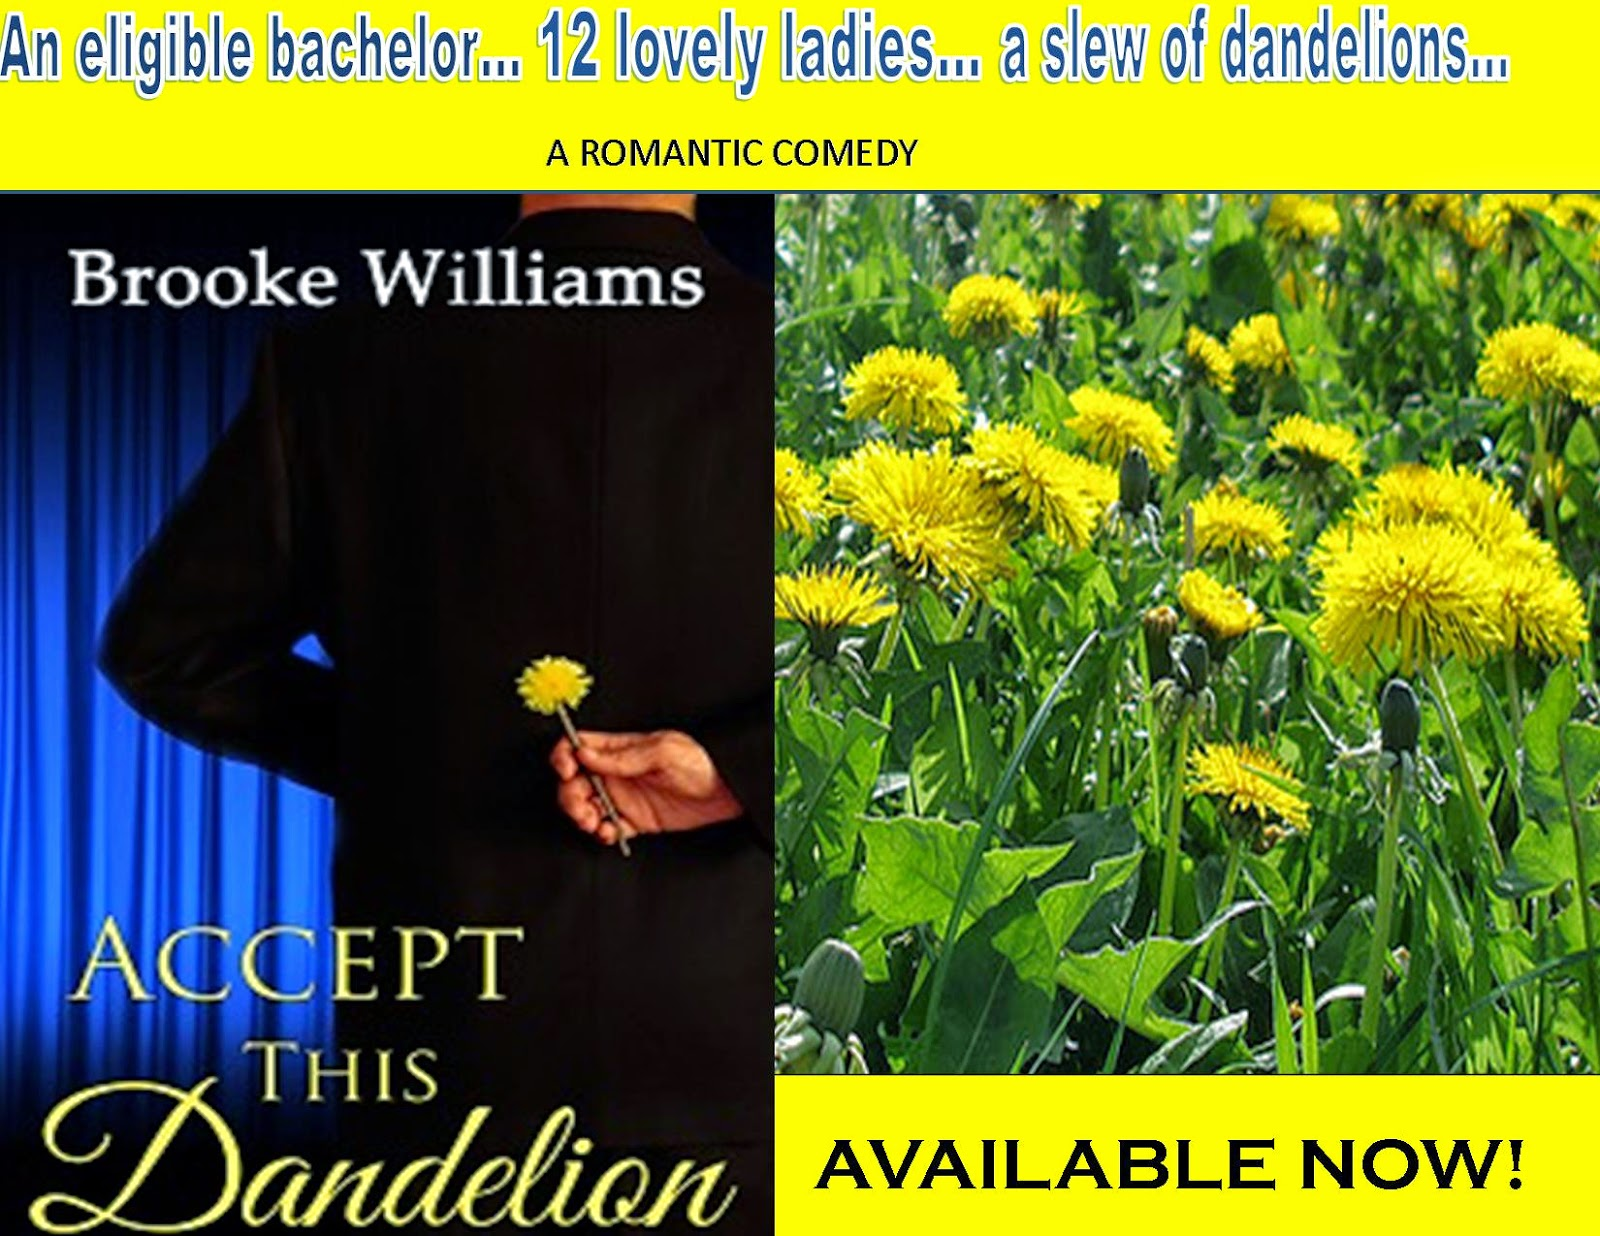 http://www.amazon.com/Accept-This-Dandelion-Brooke-Williams-ebook/dp/B00R54MUXY/ref=sr_1_1?ie=UTF8&qid=1424612960&sr=8-1&keywords=accept+this+dandelion